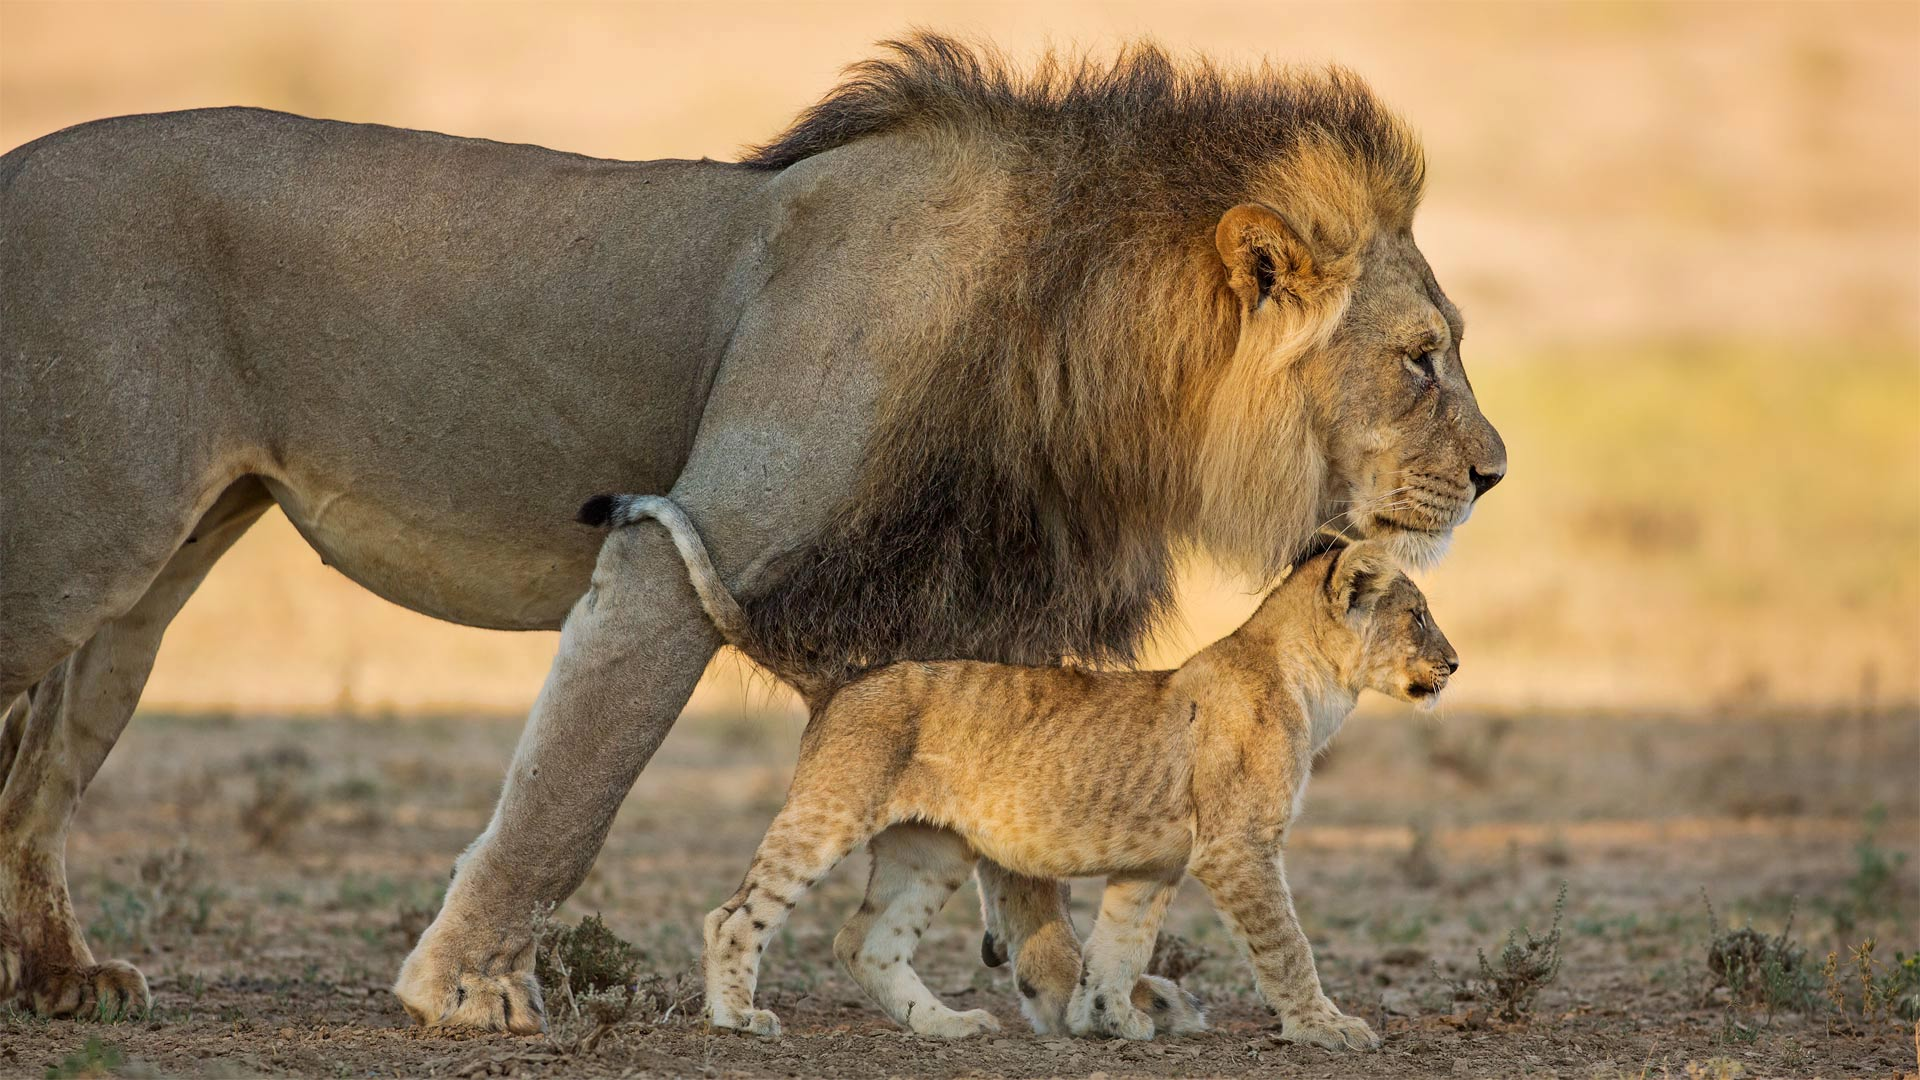 Male African lion and cub in Kgalagadi Transfrontier Park in southern Africa (© Richard Du Toit/Minden Pictures)(Bing United States)